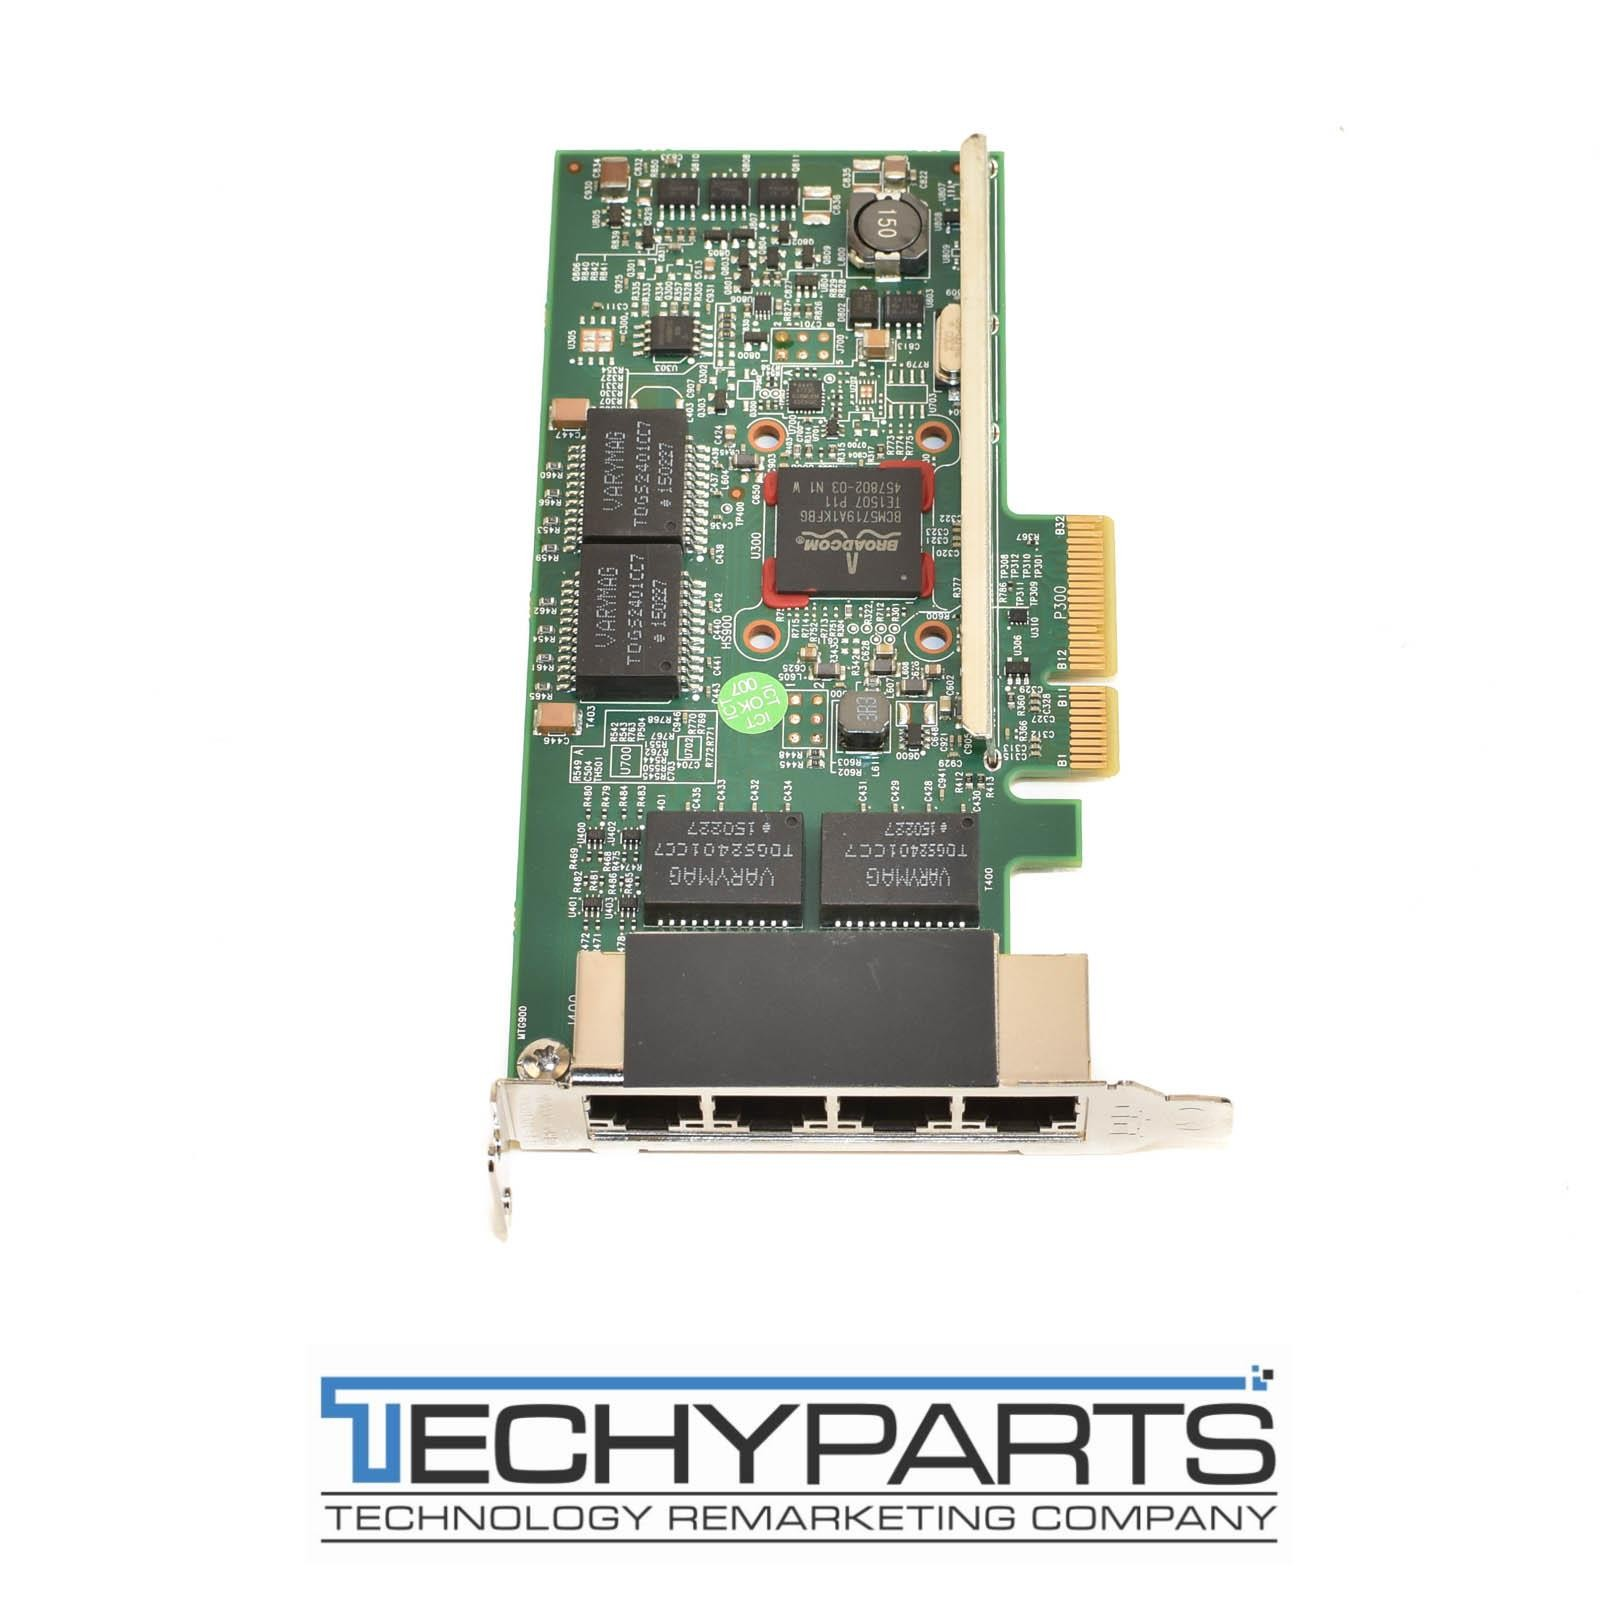 network interface cards networking dell tmgr6 broadcom 5719 1gbe 4 port pci e x4 low profile nic bcm95719a1904g